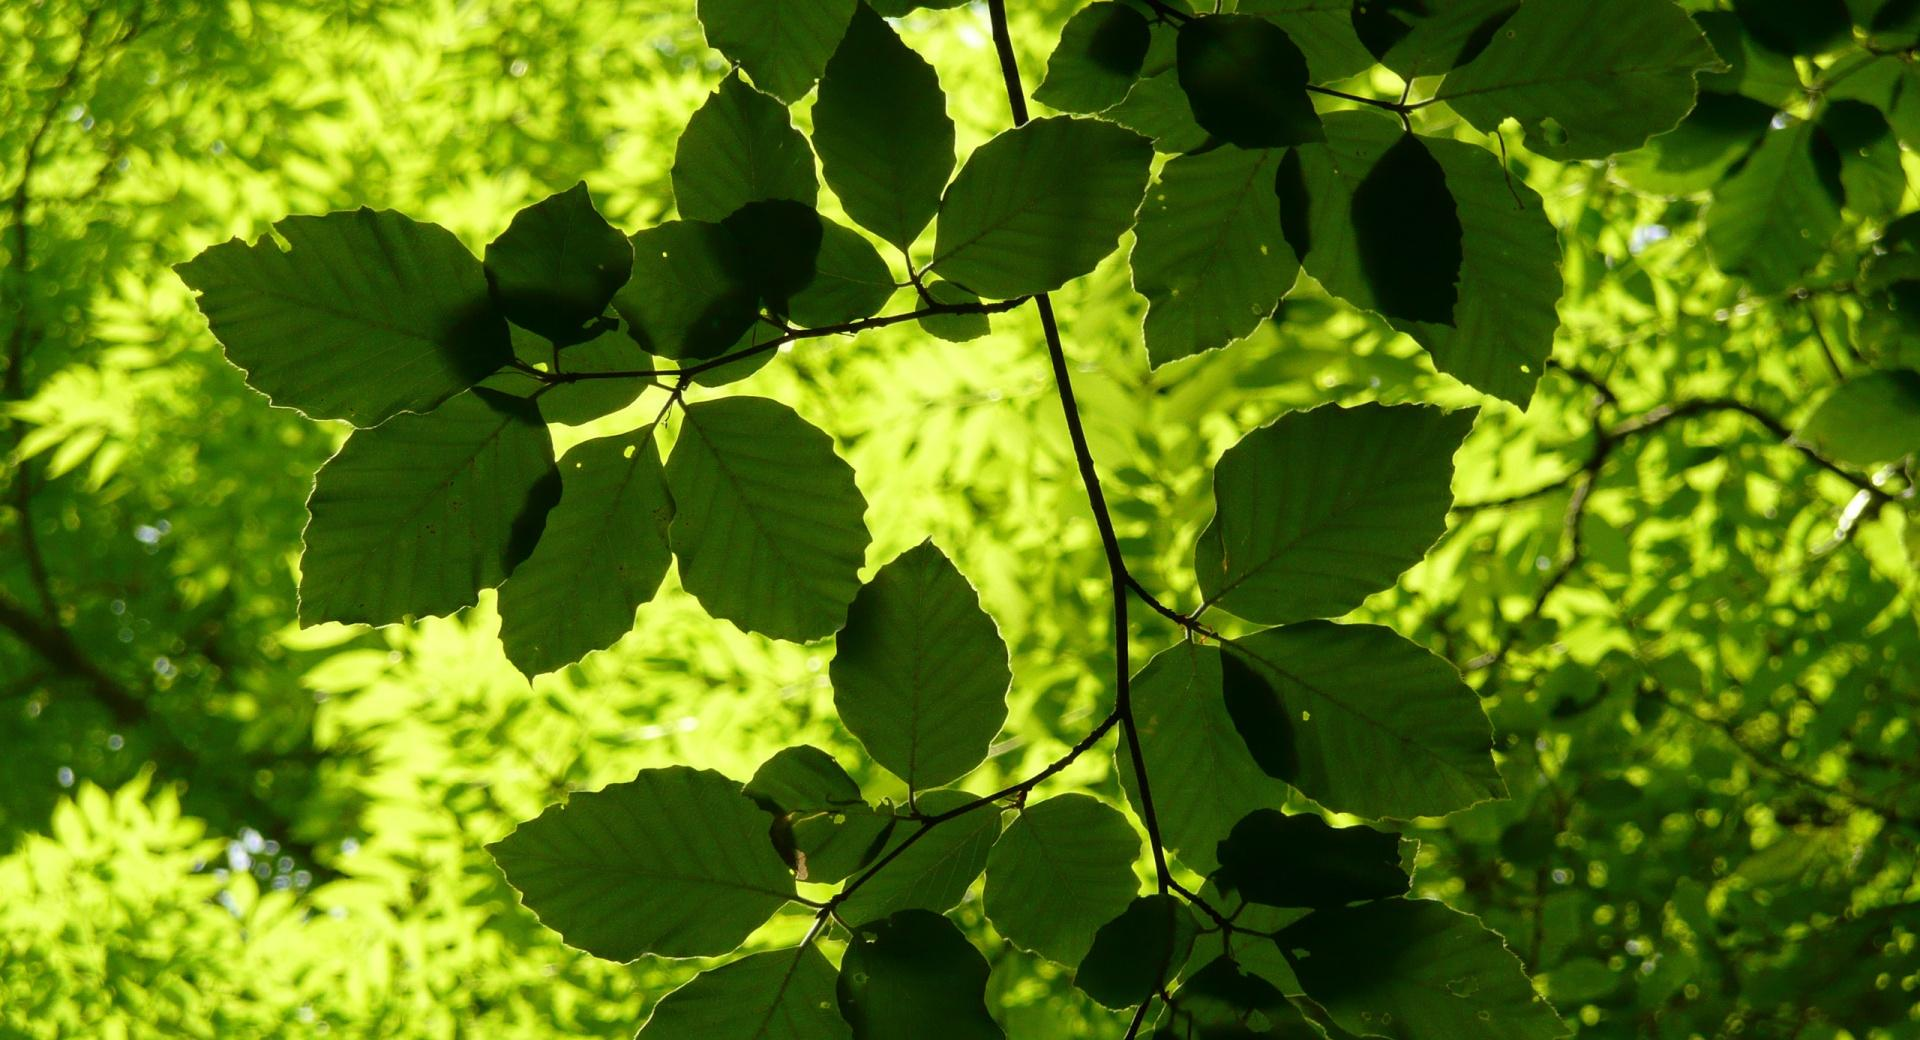 Green Leaves Branch at 640 x 1136 iPhone 5 size wallpapers HD quality